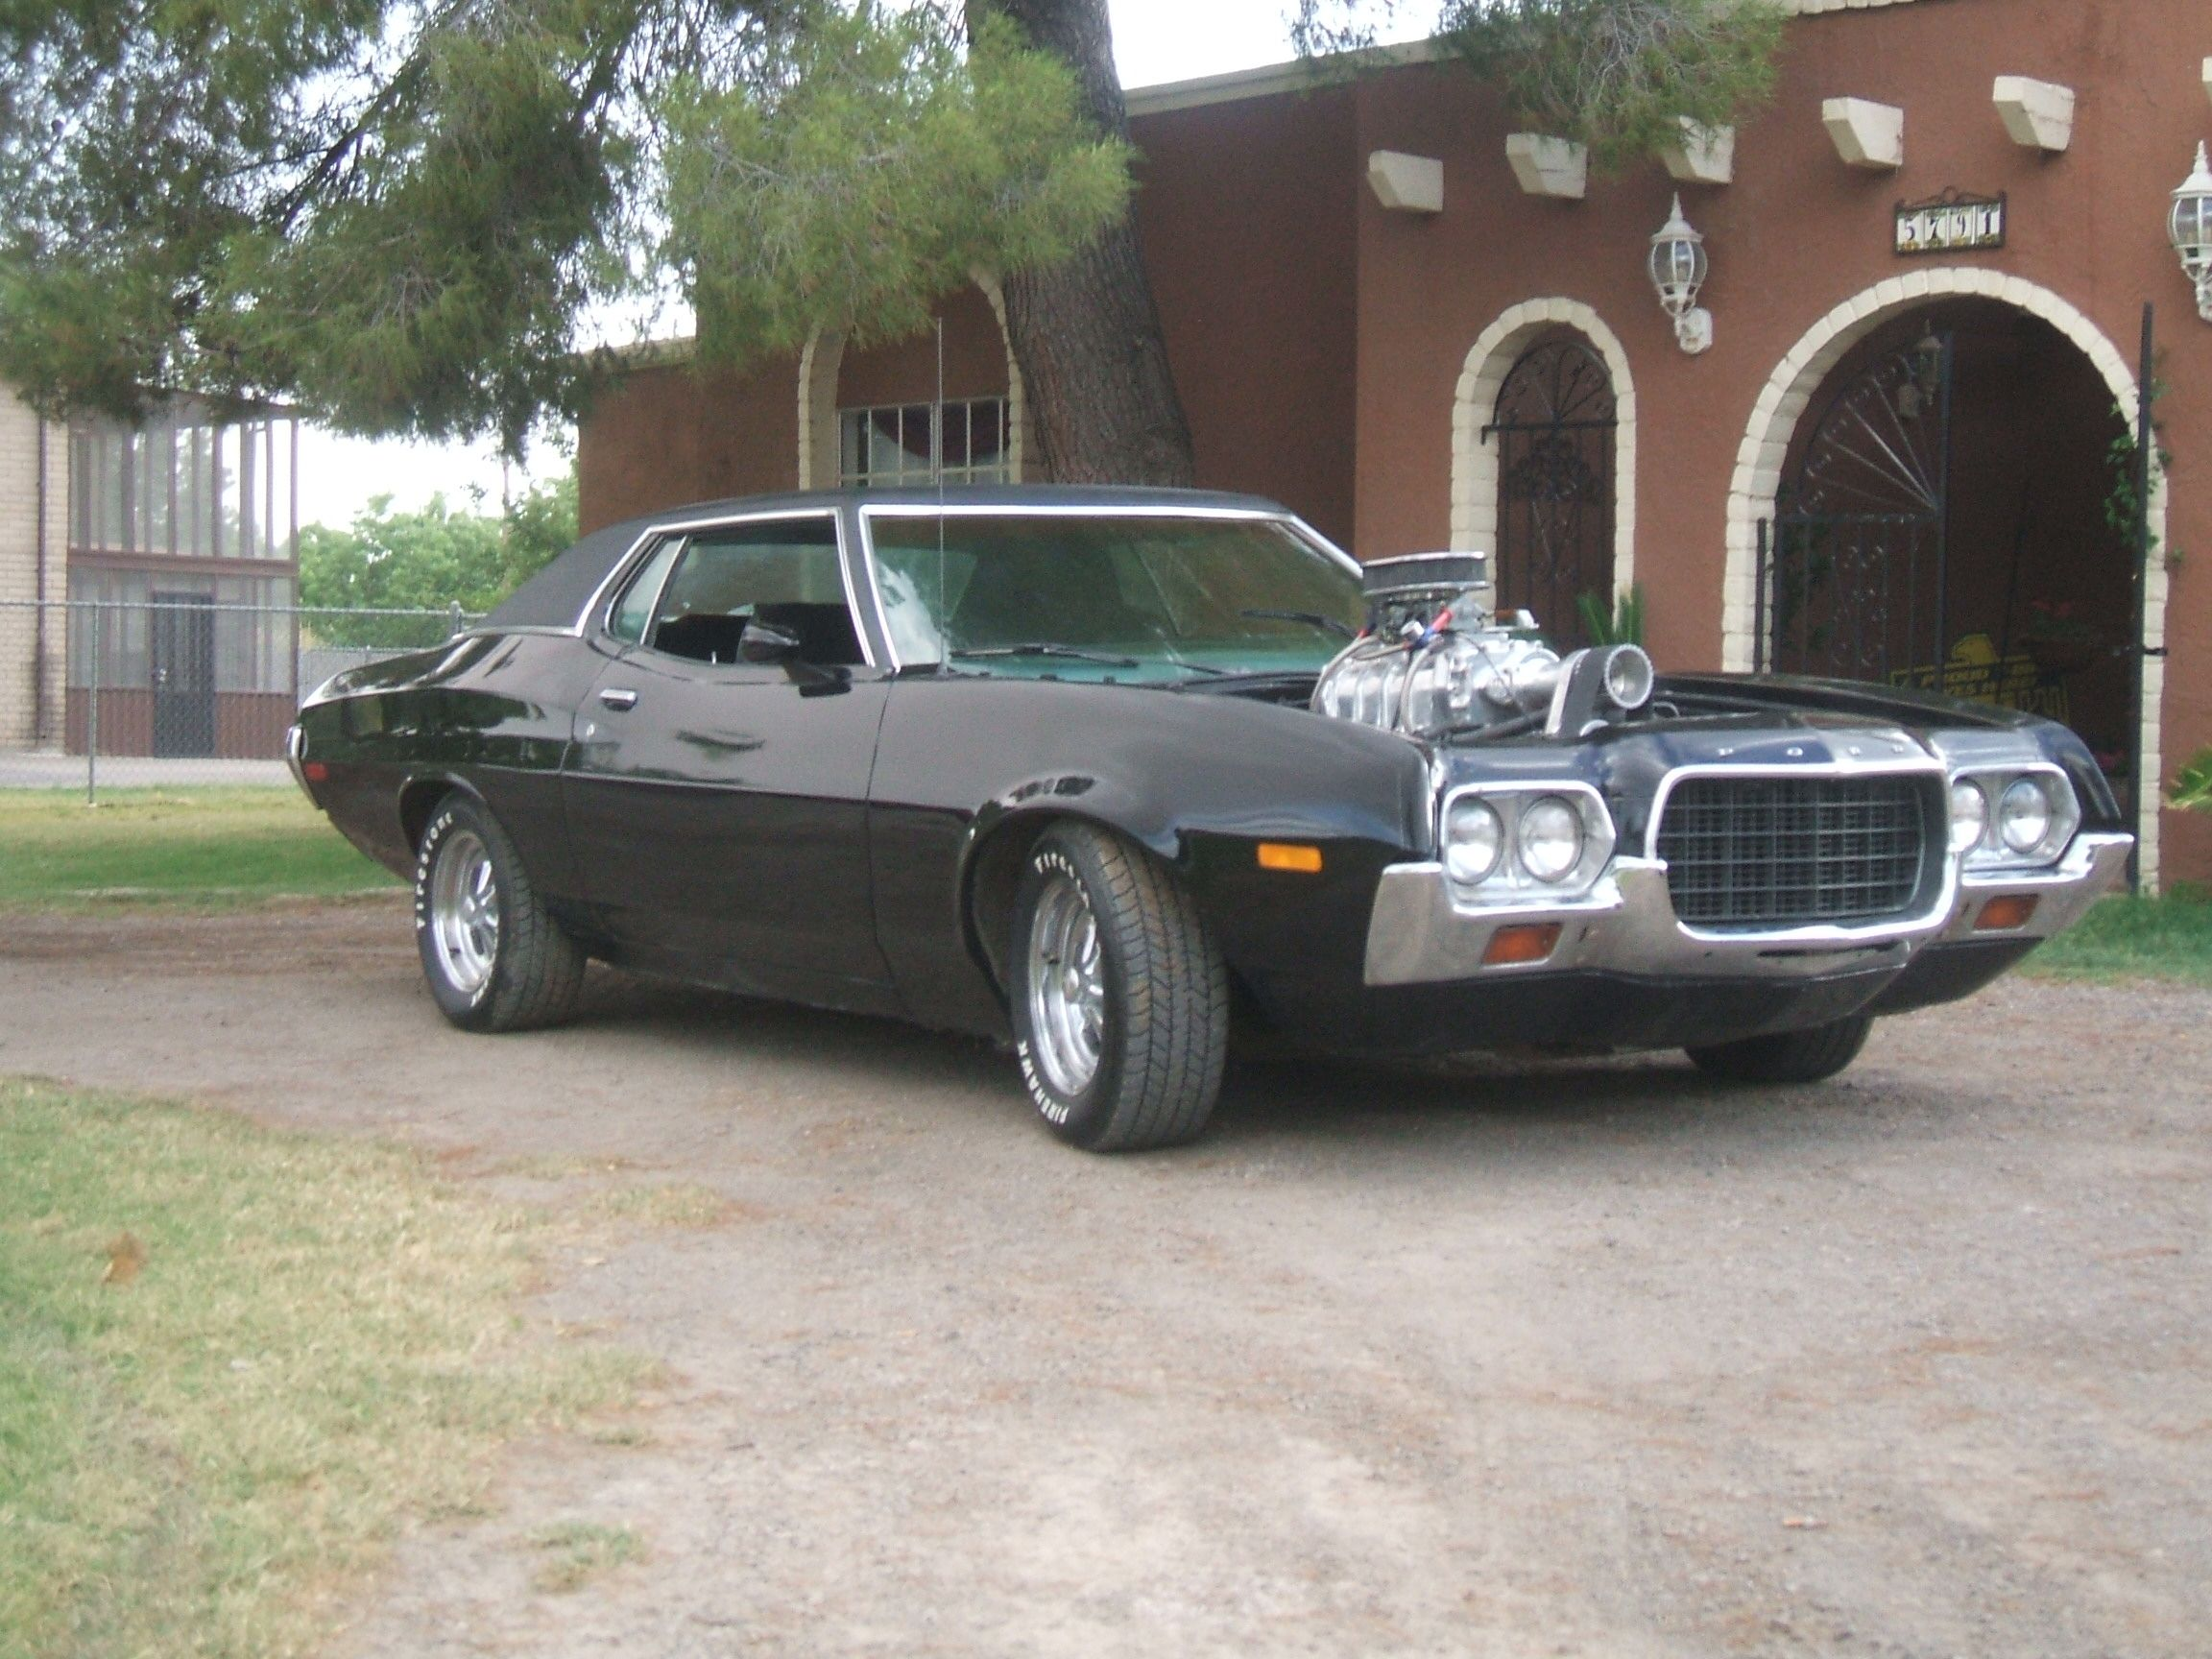 Supercharged Torino Google Search Ford Torino American Muscle